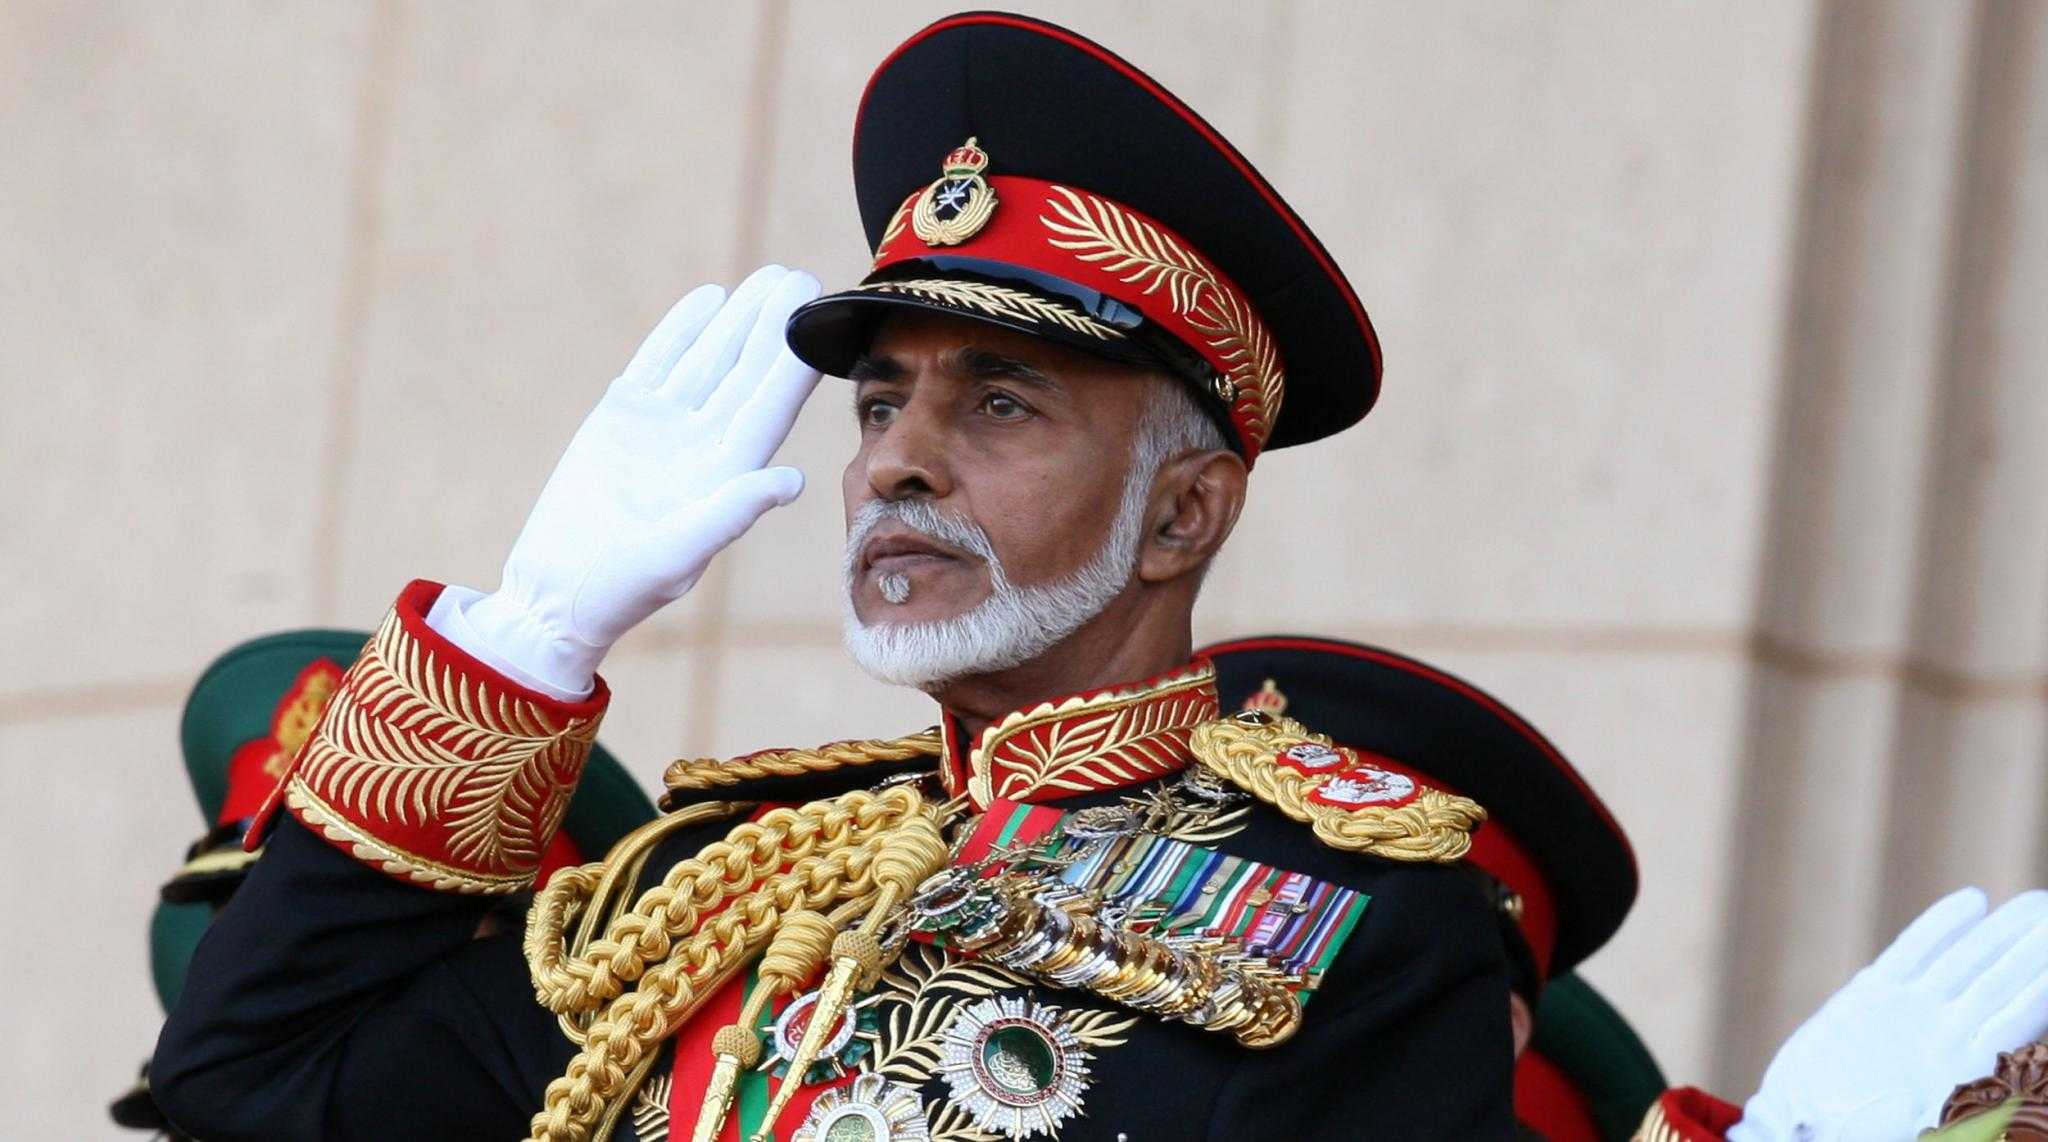 India to Observe One-day Mourning as Mark of Respect to Oman King Sultan Qaboos Bin Said Al Said